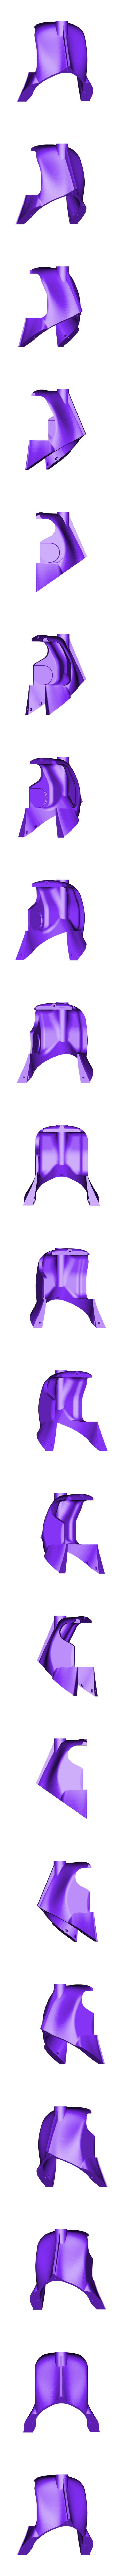 OpenRC_F1_250scaled_-_Component1-1.STL Download free STL file OpenRC F1 250% scaled • Template to 3D print, colorFabb